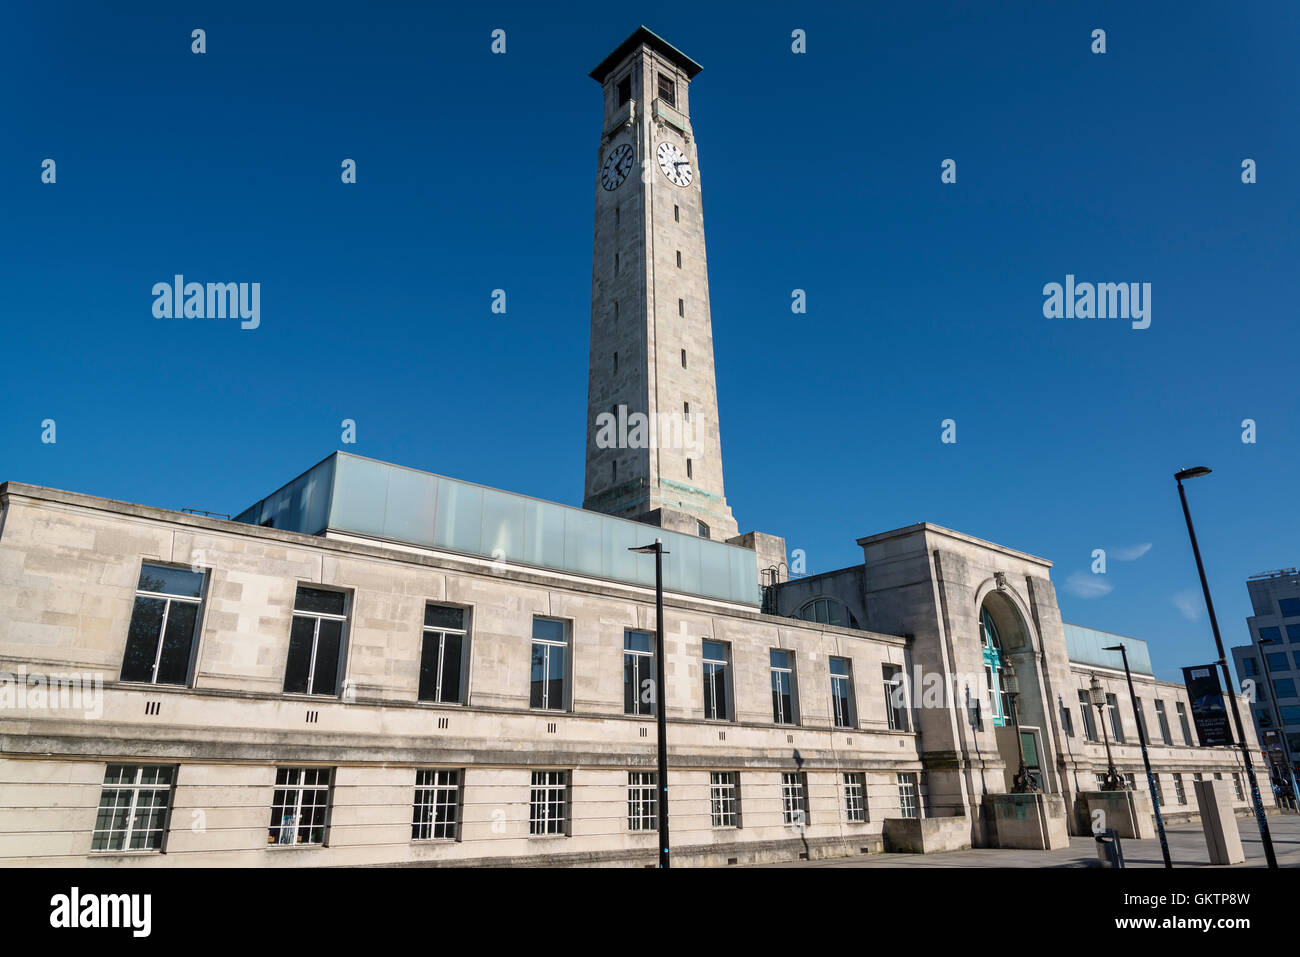 SeaCity Museum, Civic Centre, Southampton, Hampshire, England, UK - Stock Image